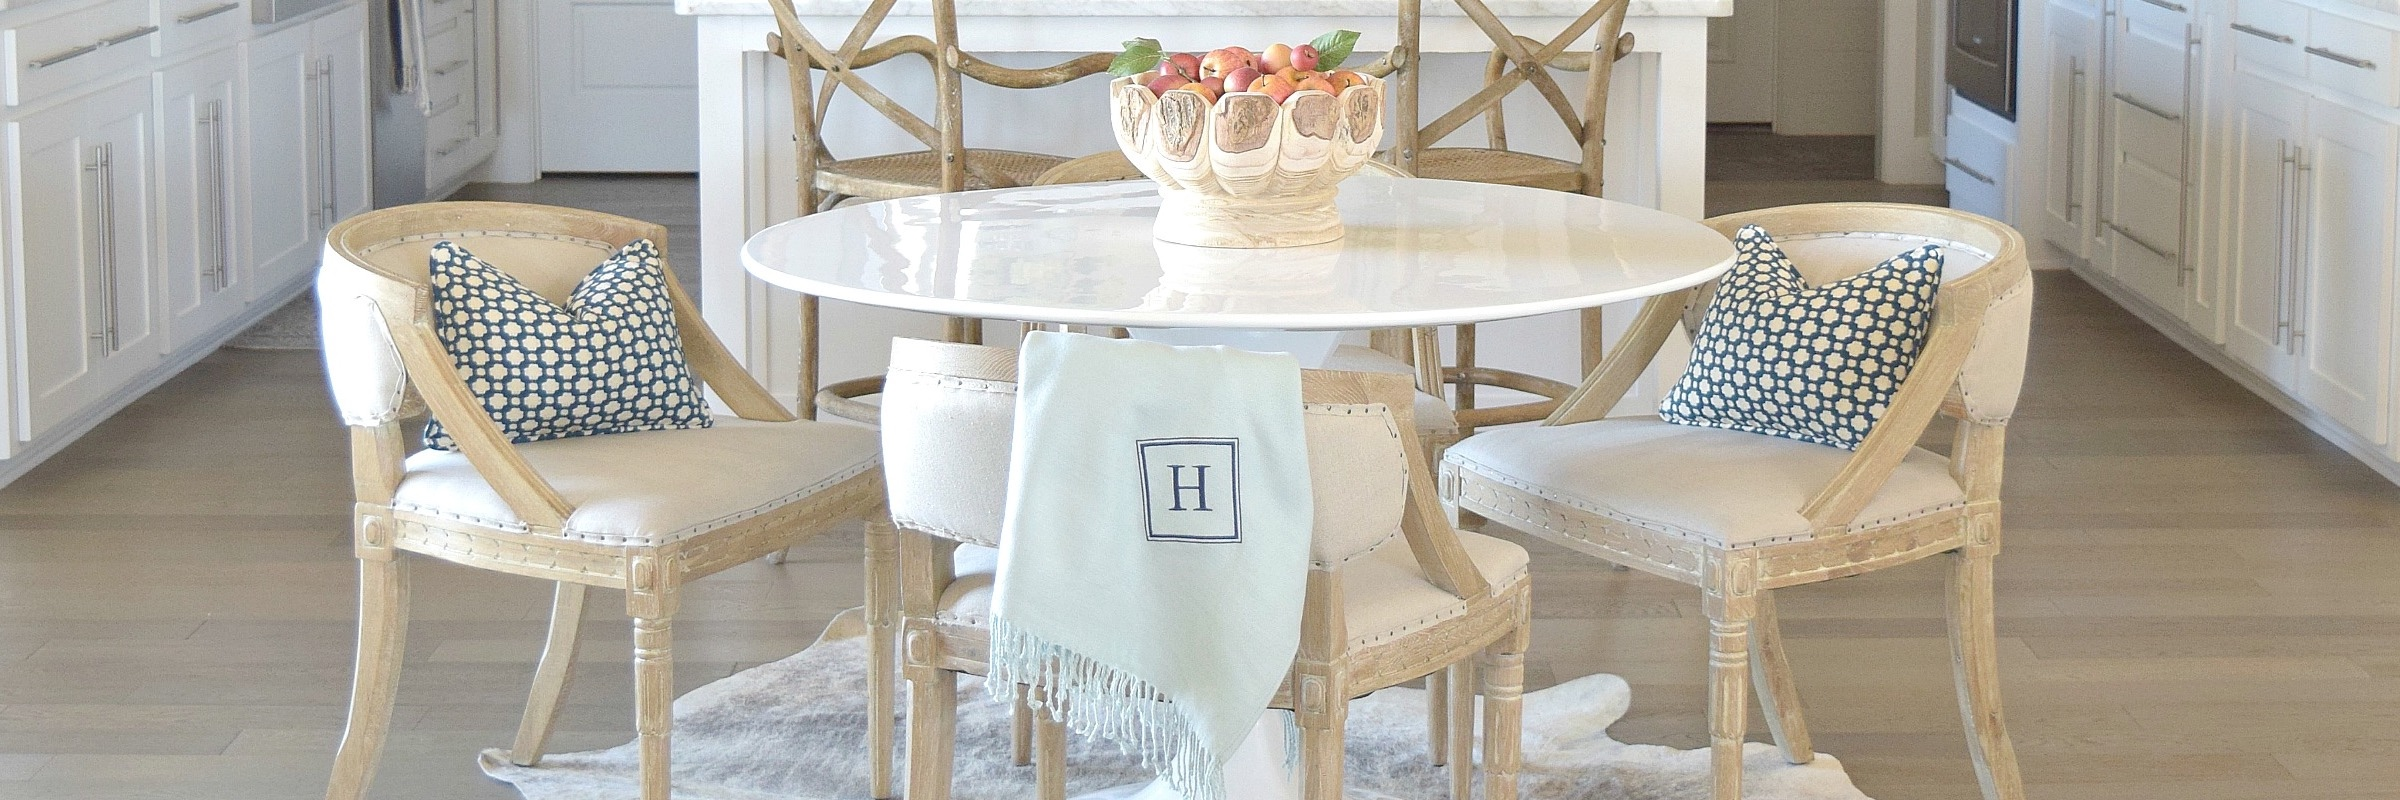 ... Zdesign White Kitchen Tulip Table ...